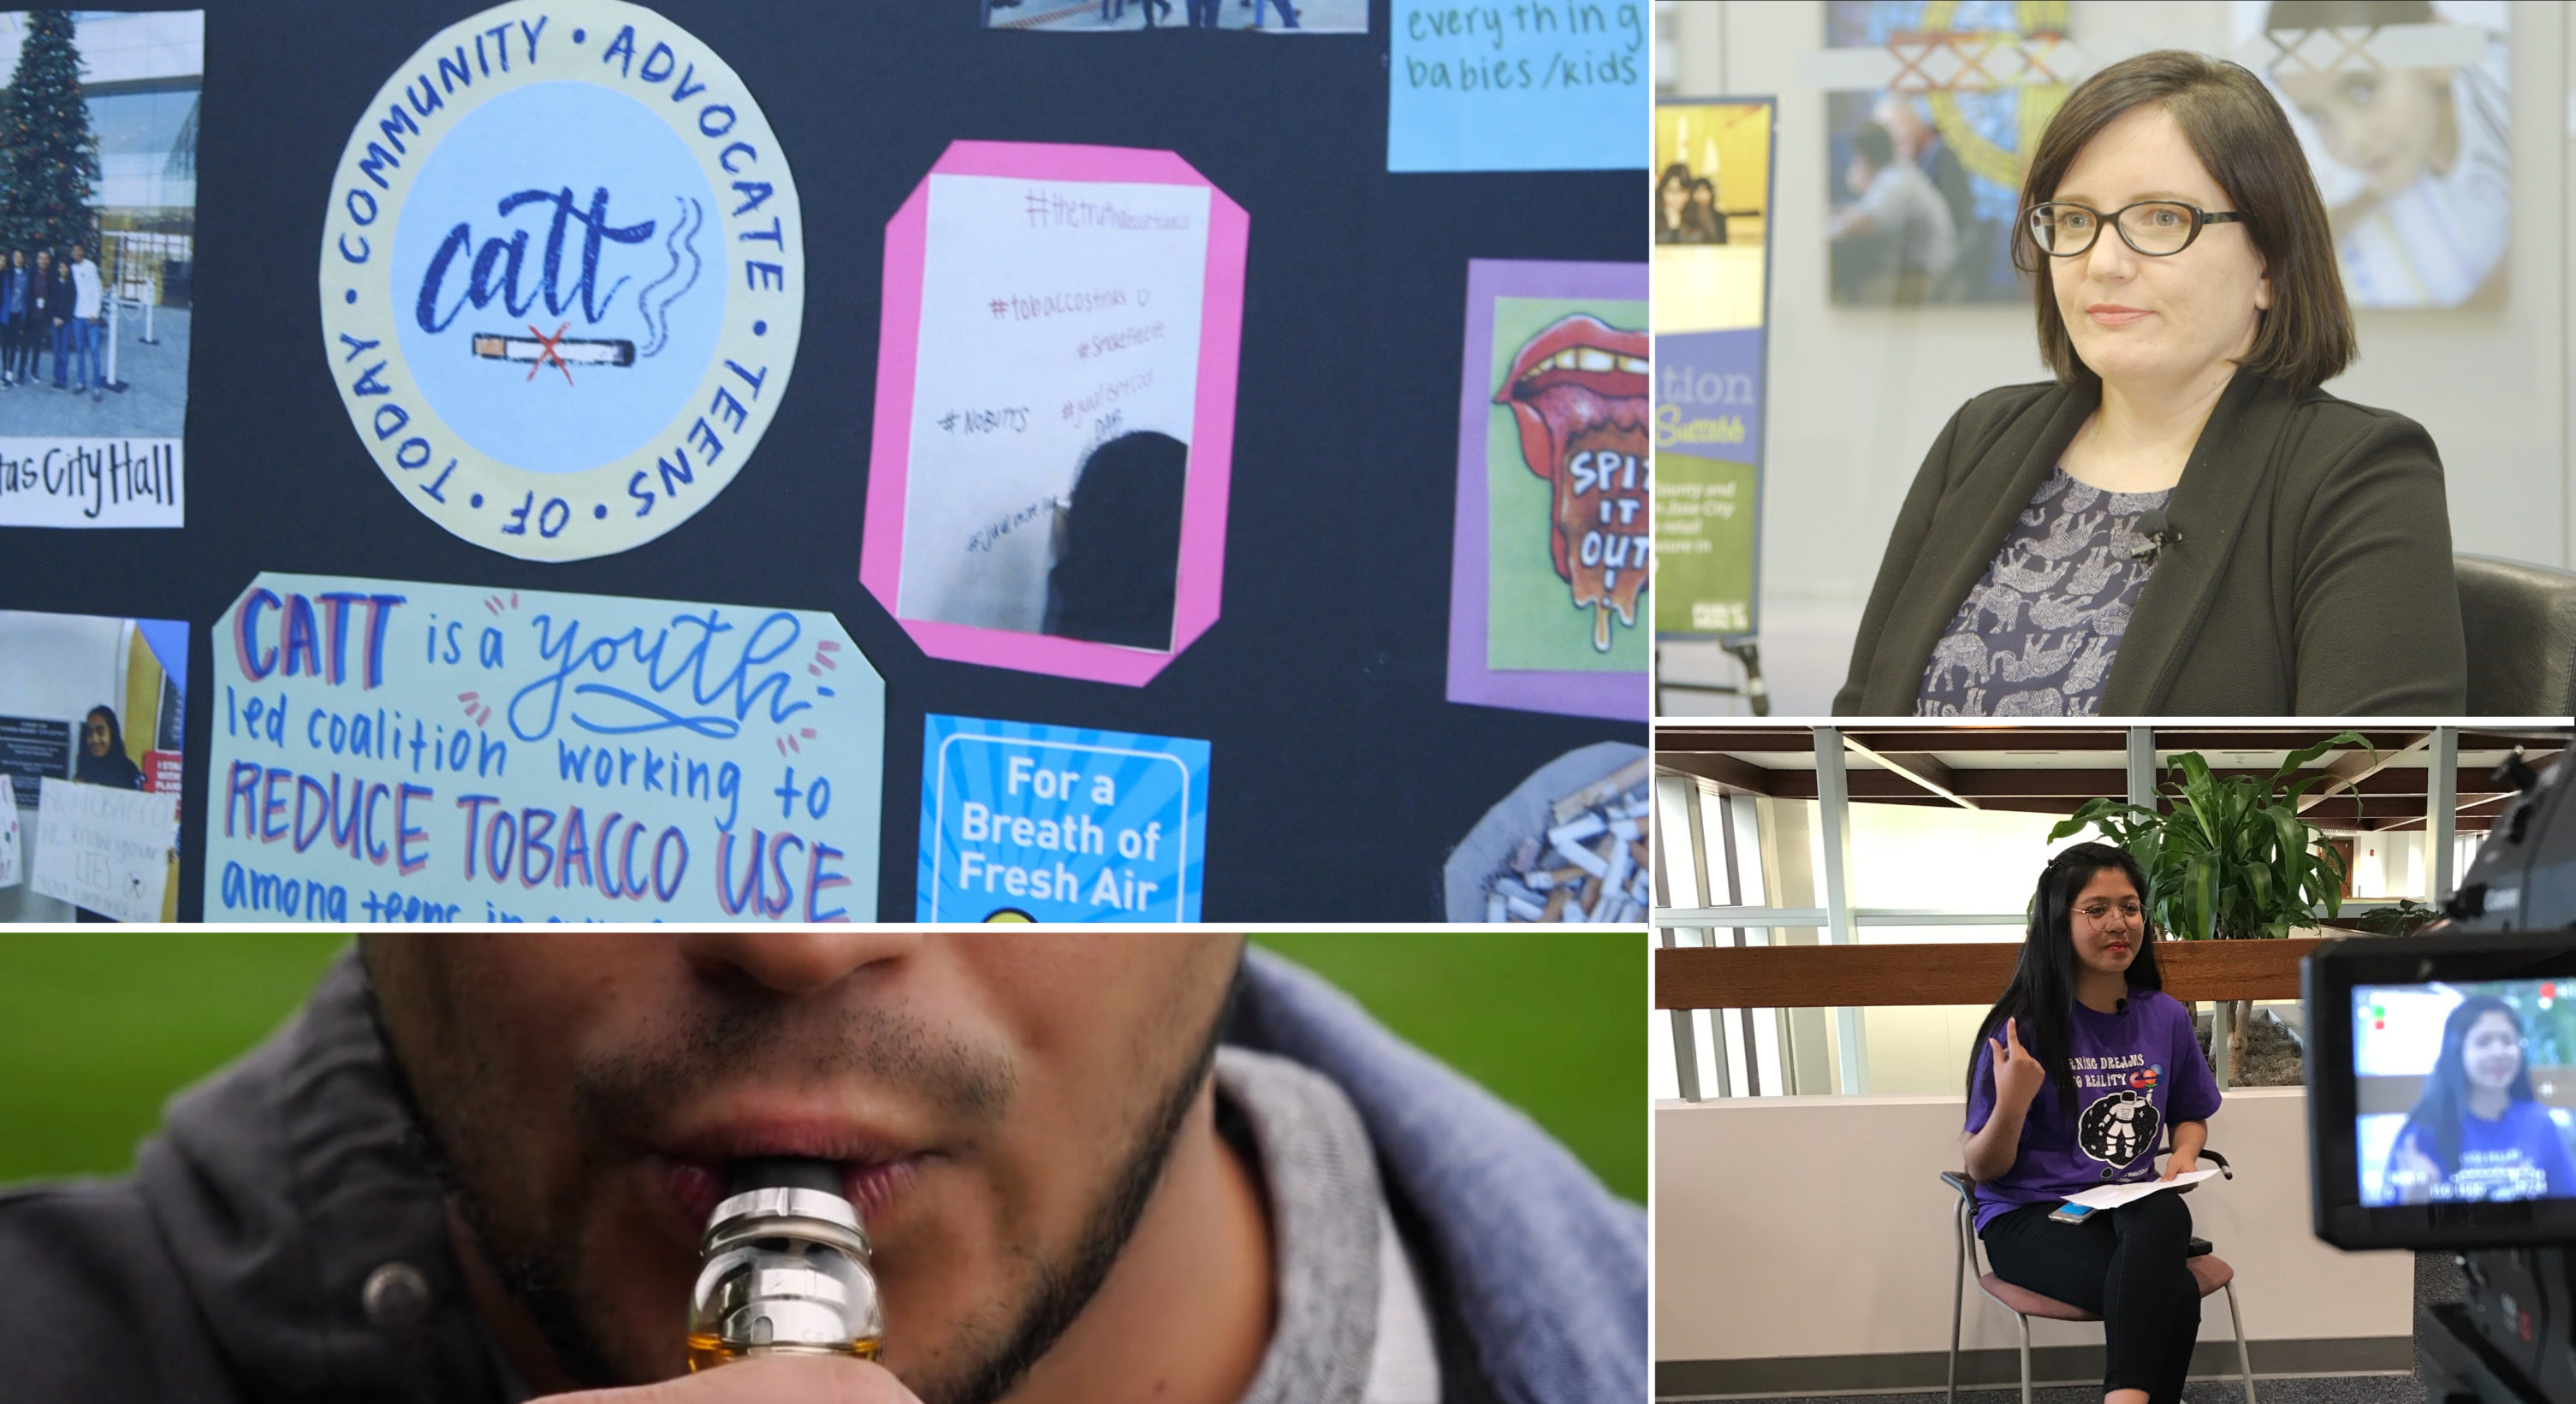 County youth fight vaping, nicotine